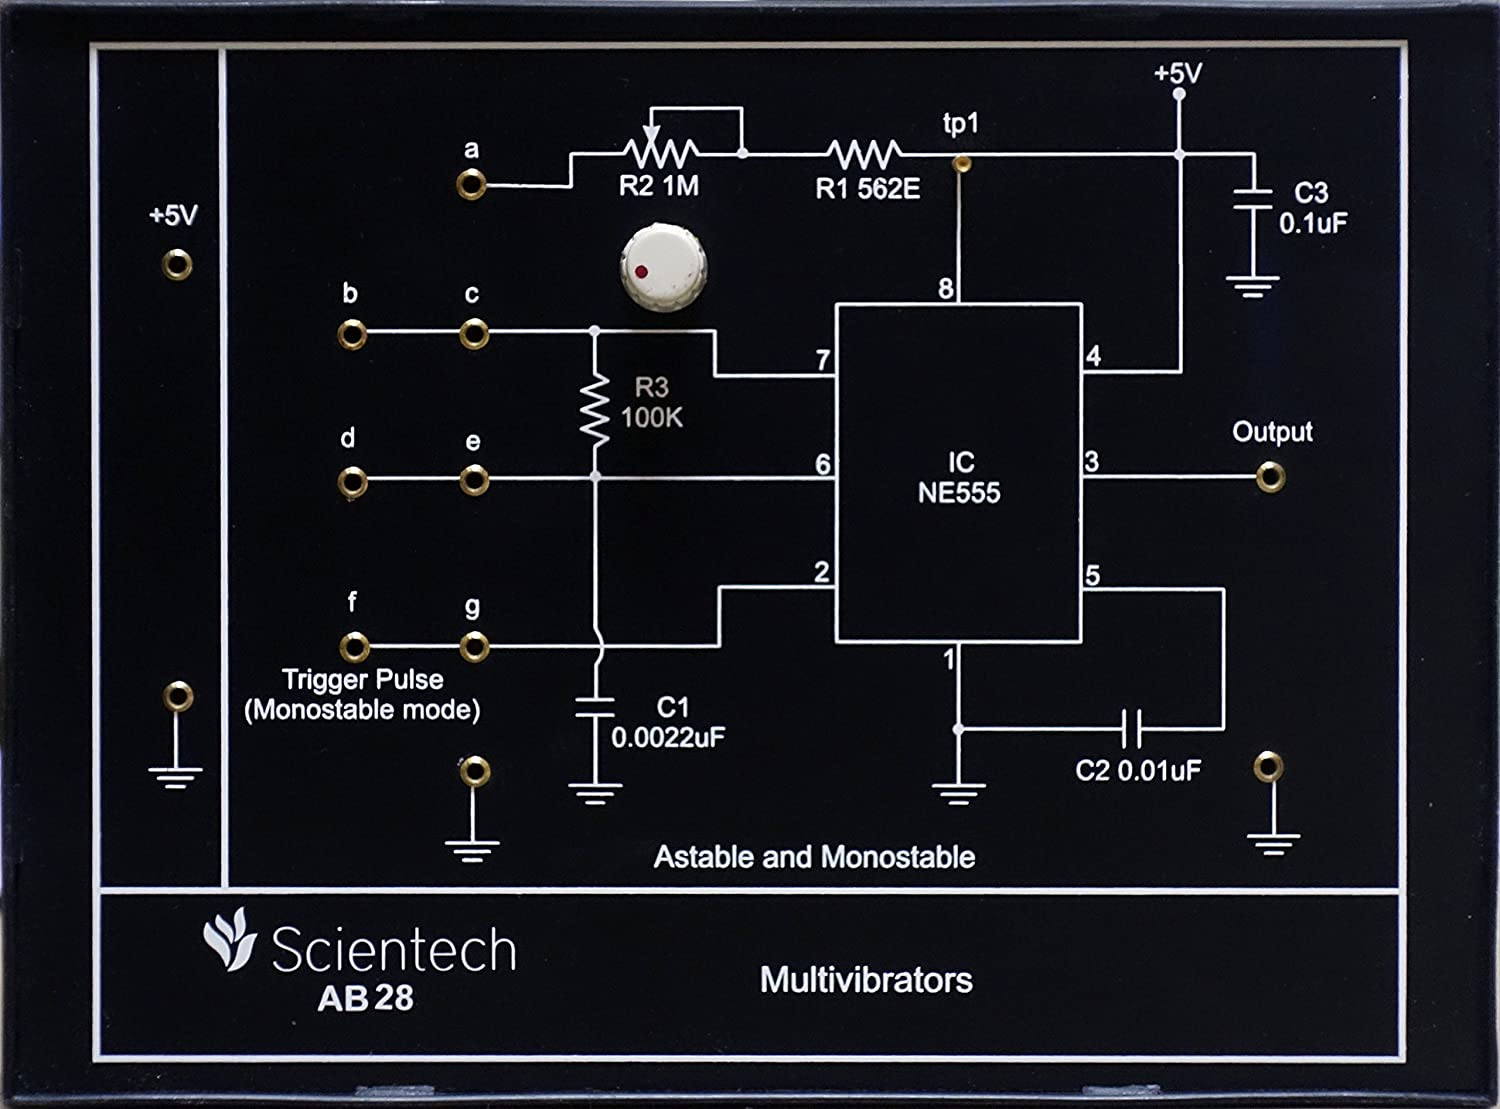 Ab28 Multivibrators Astable And Monostable Experiment Board Above Figure Shows The 555 Timer Multivibrator Circuit Diagram Trainer Kit With 1 Year Warranty Without Power Supply